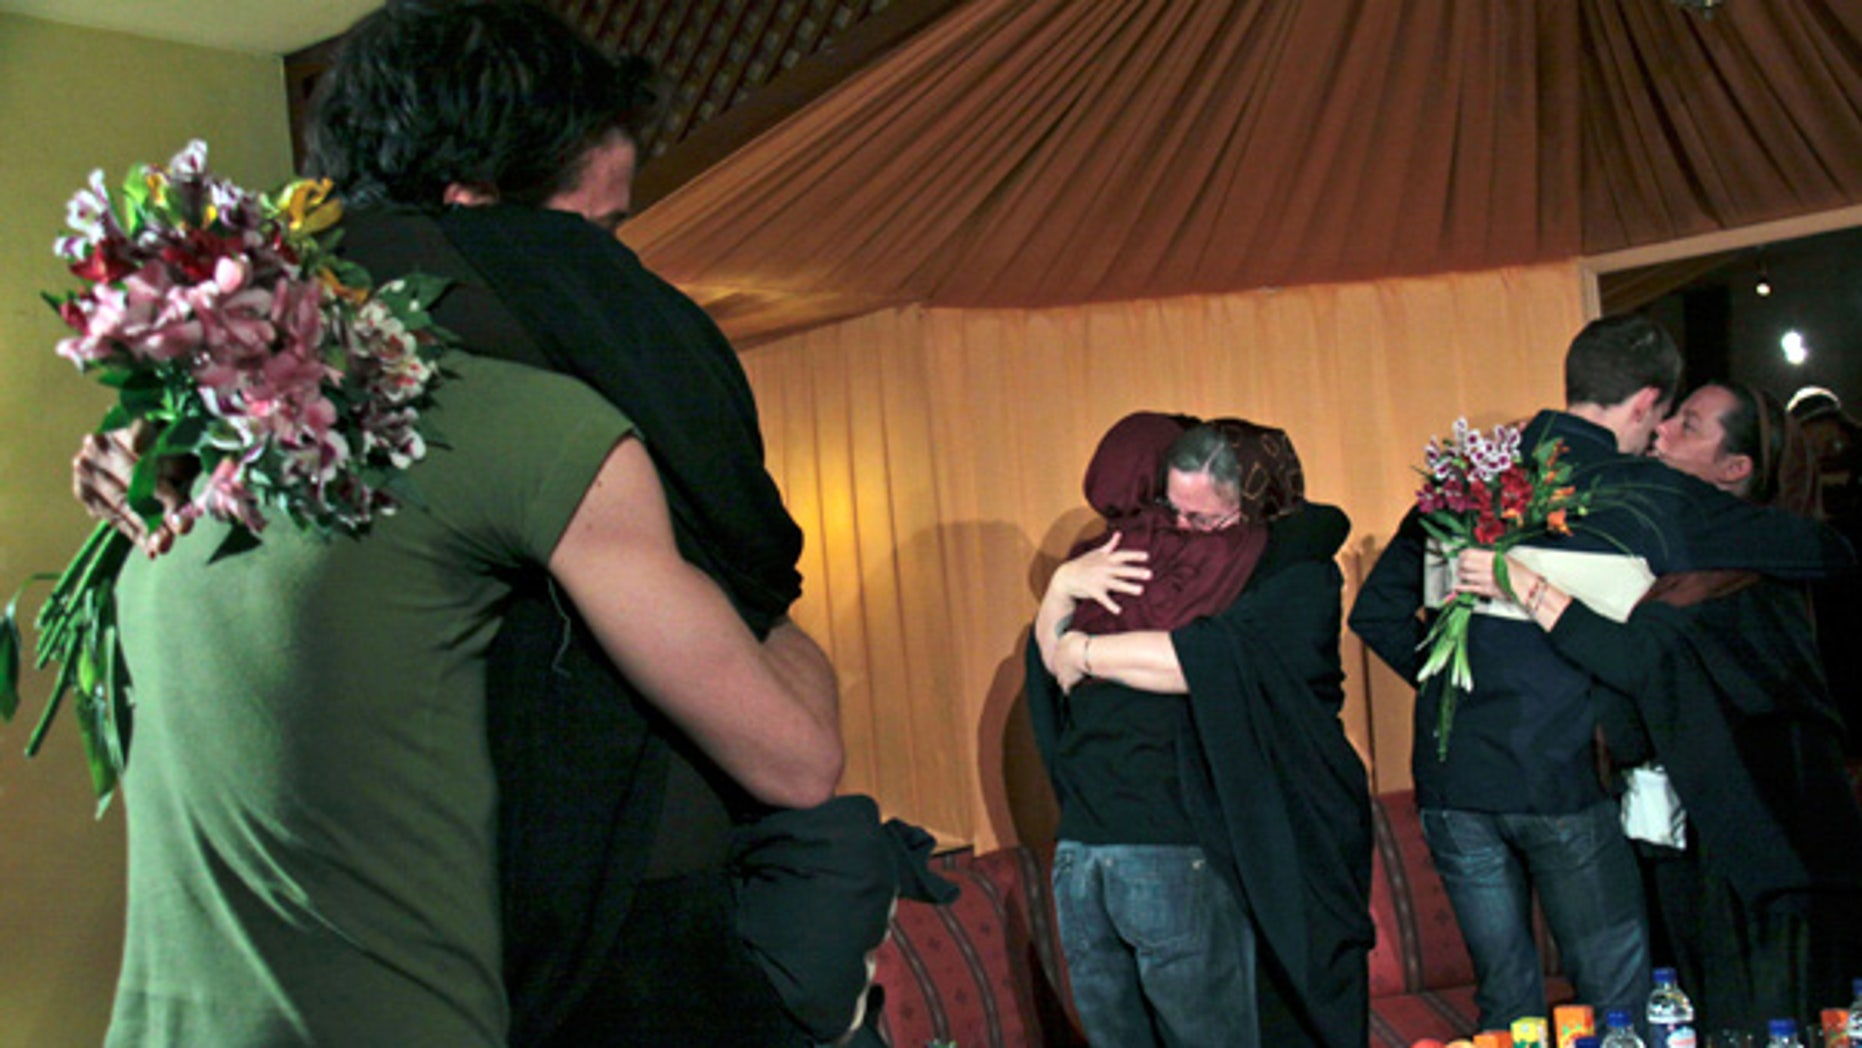 May 20: The mothers of 3 Americans detained in Iran hug their children at the Esteghlal hotel in Tehran.